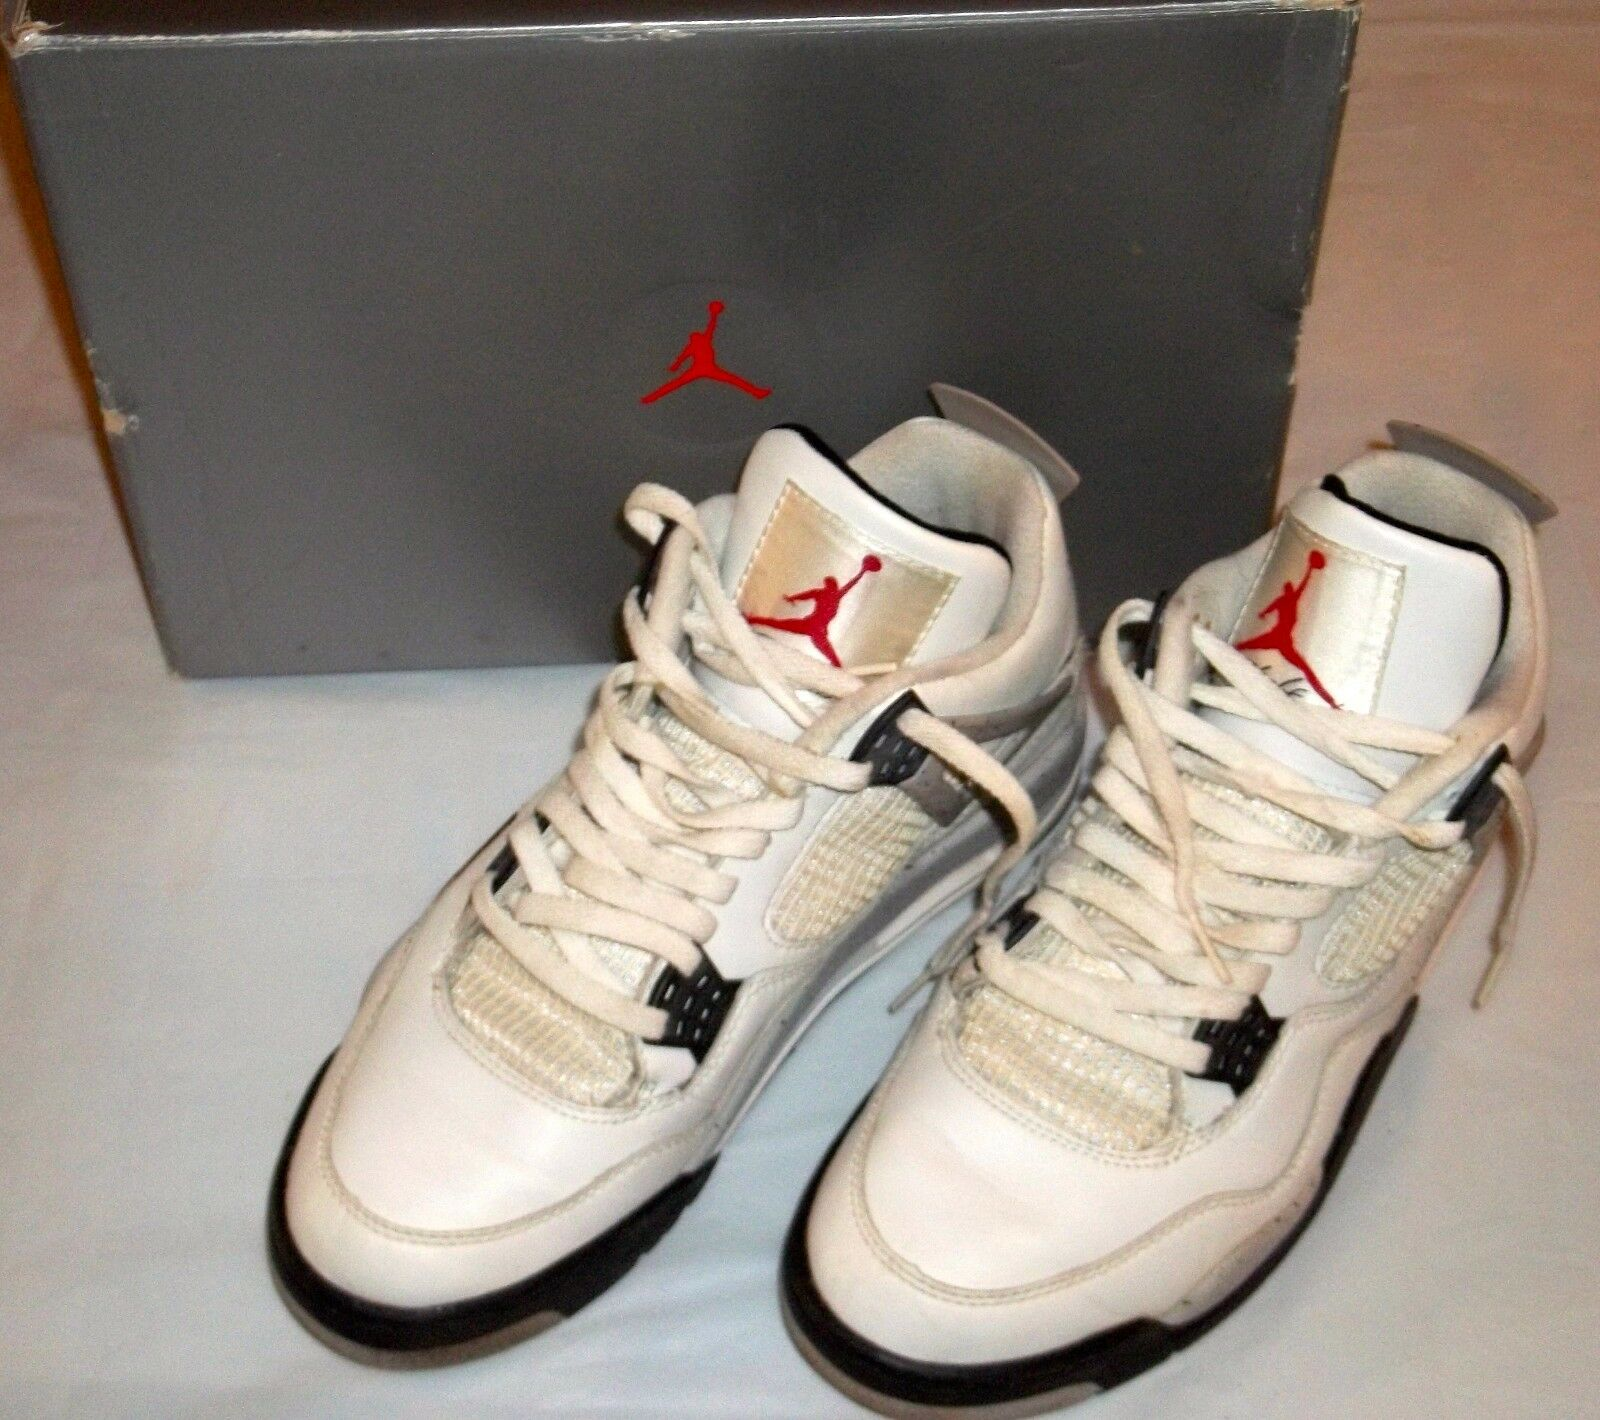 1999 Air Jordan IV 4 Retro Cement Grey White Size 10 shoes 136013-101 With Box